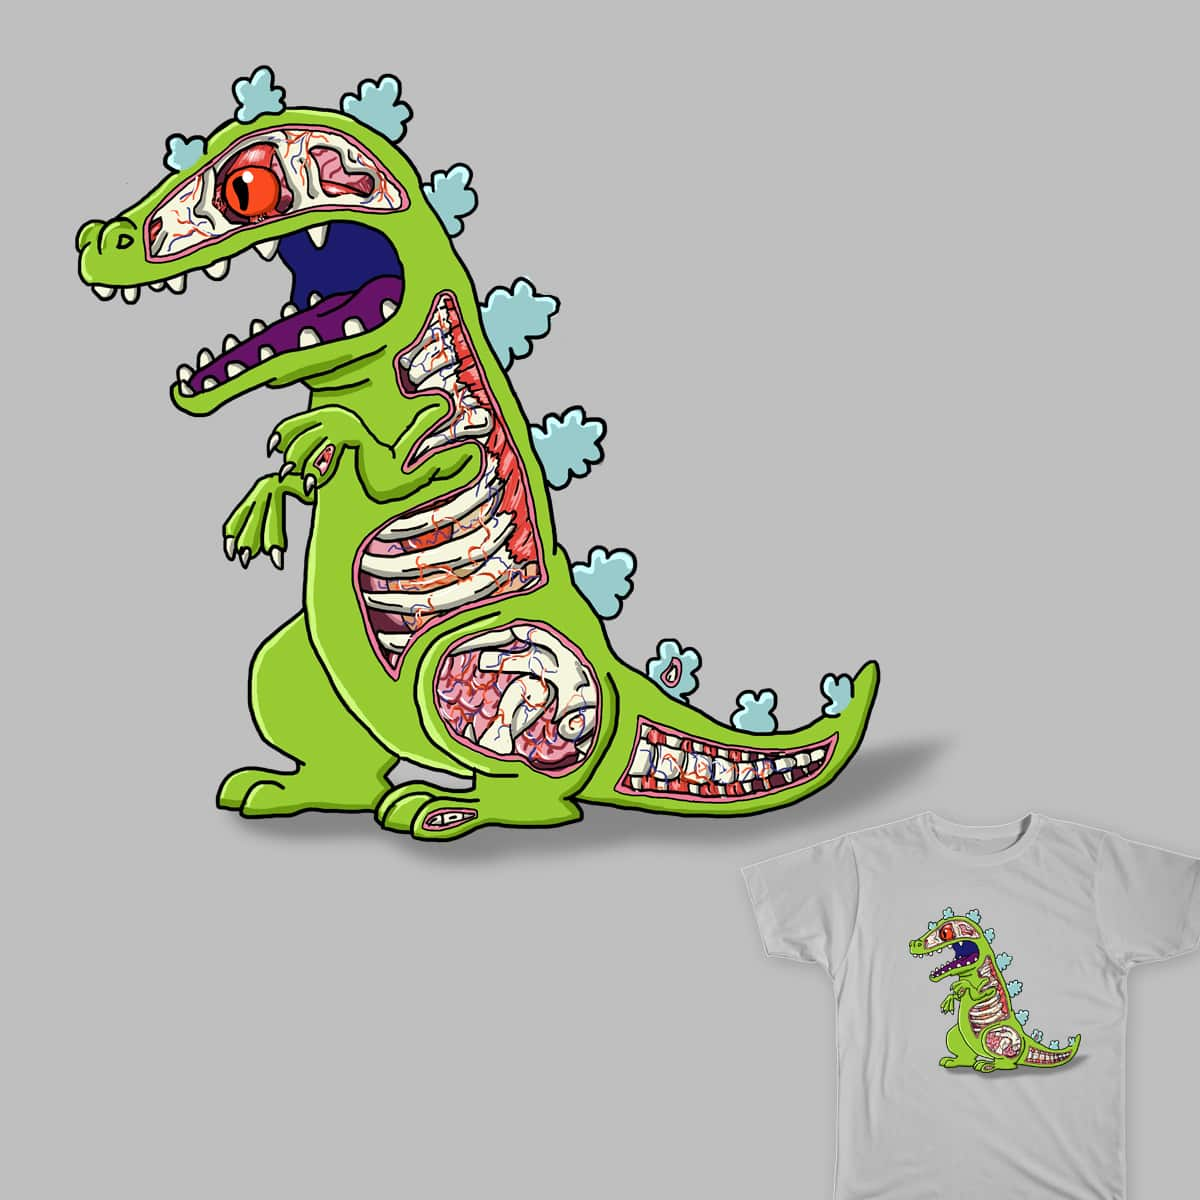 More than a Toy by tuckerpbrown on Threadless